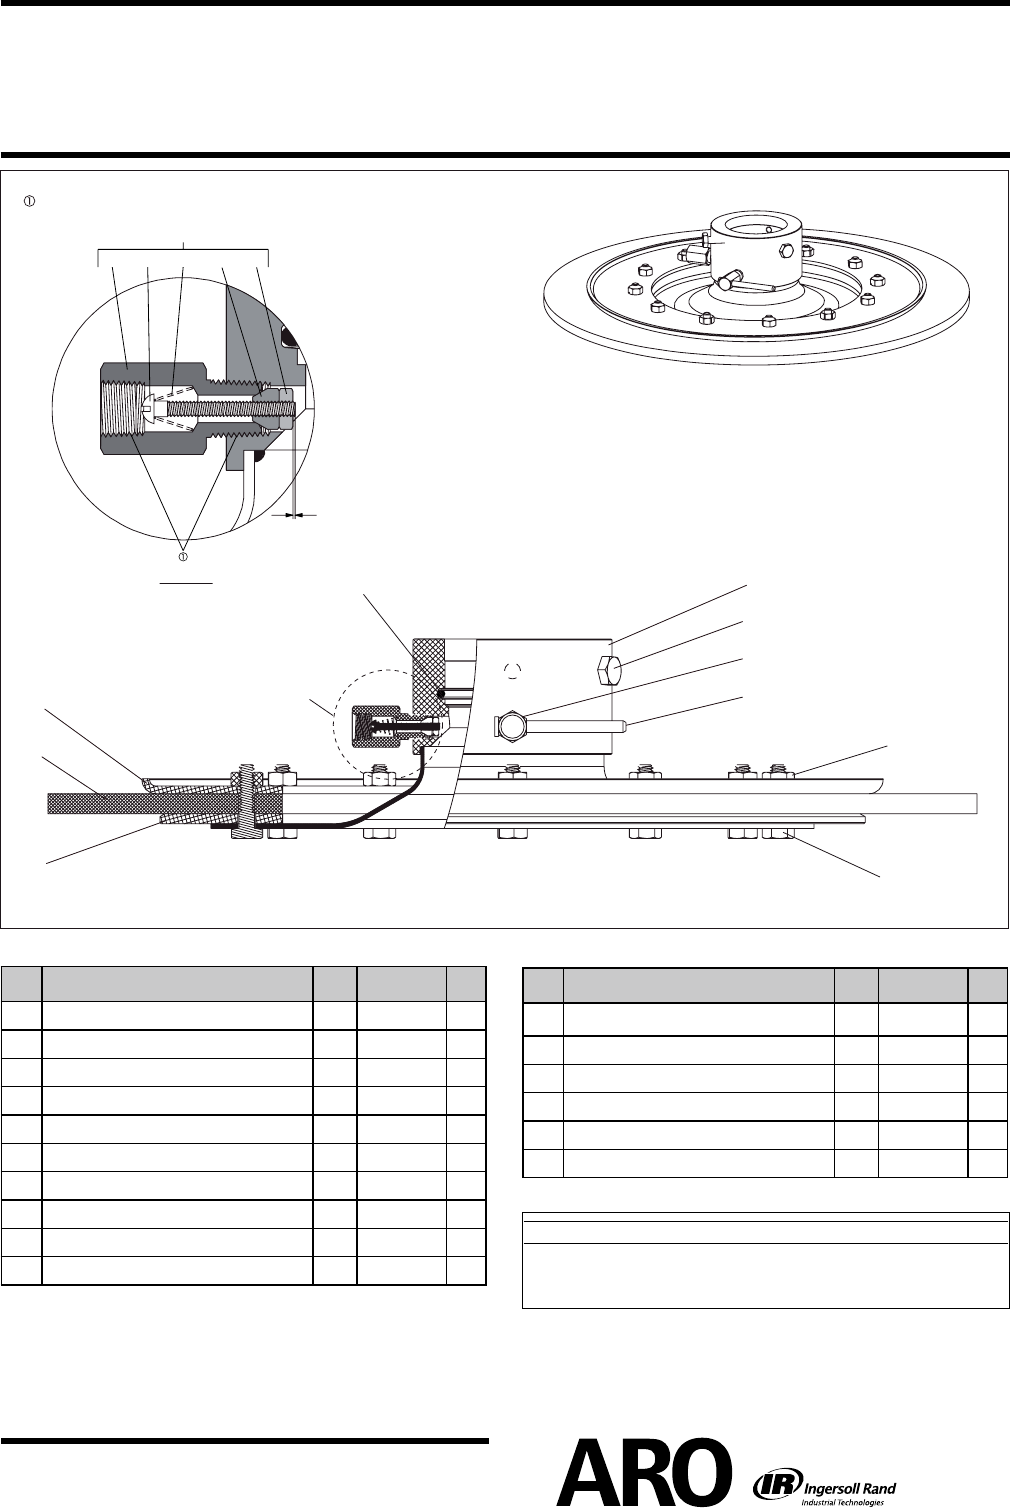 Ingersoll-Rand 651840-1-GL Biscuit Joiner User Manual